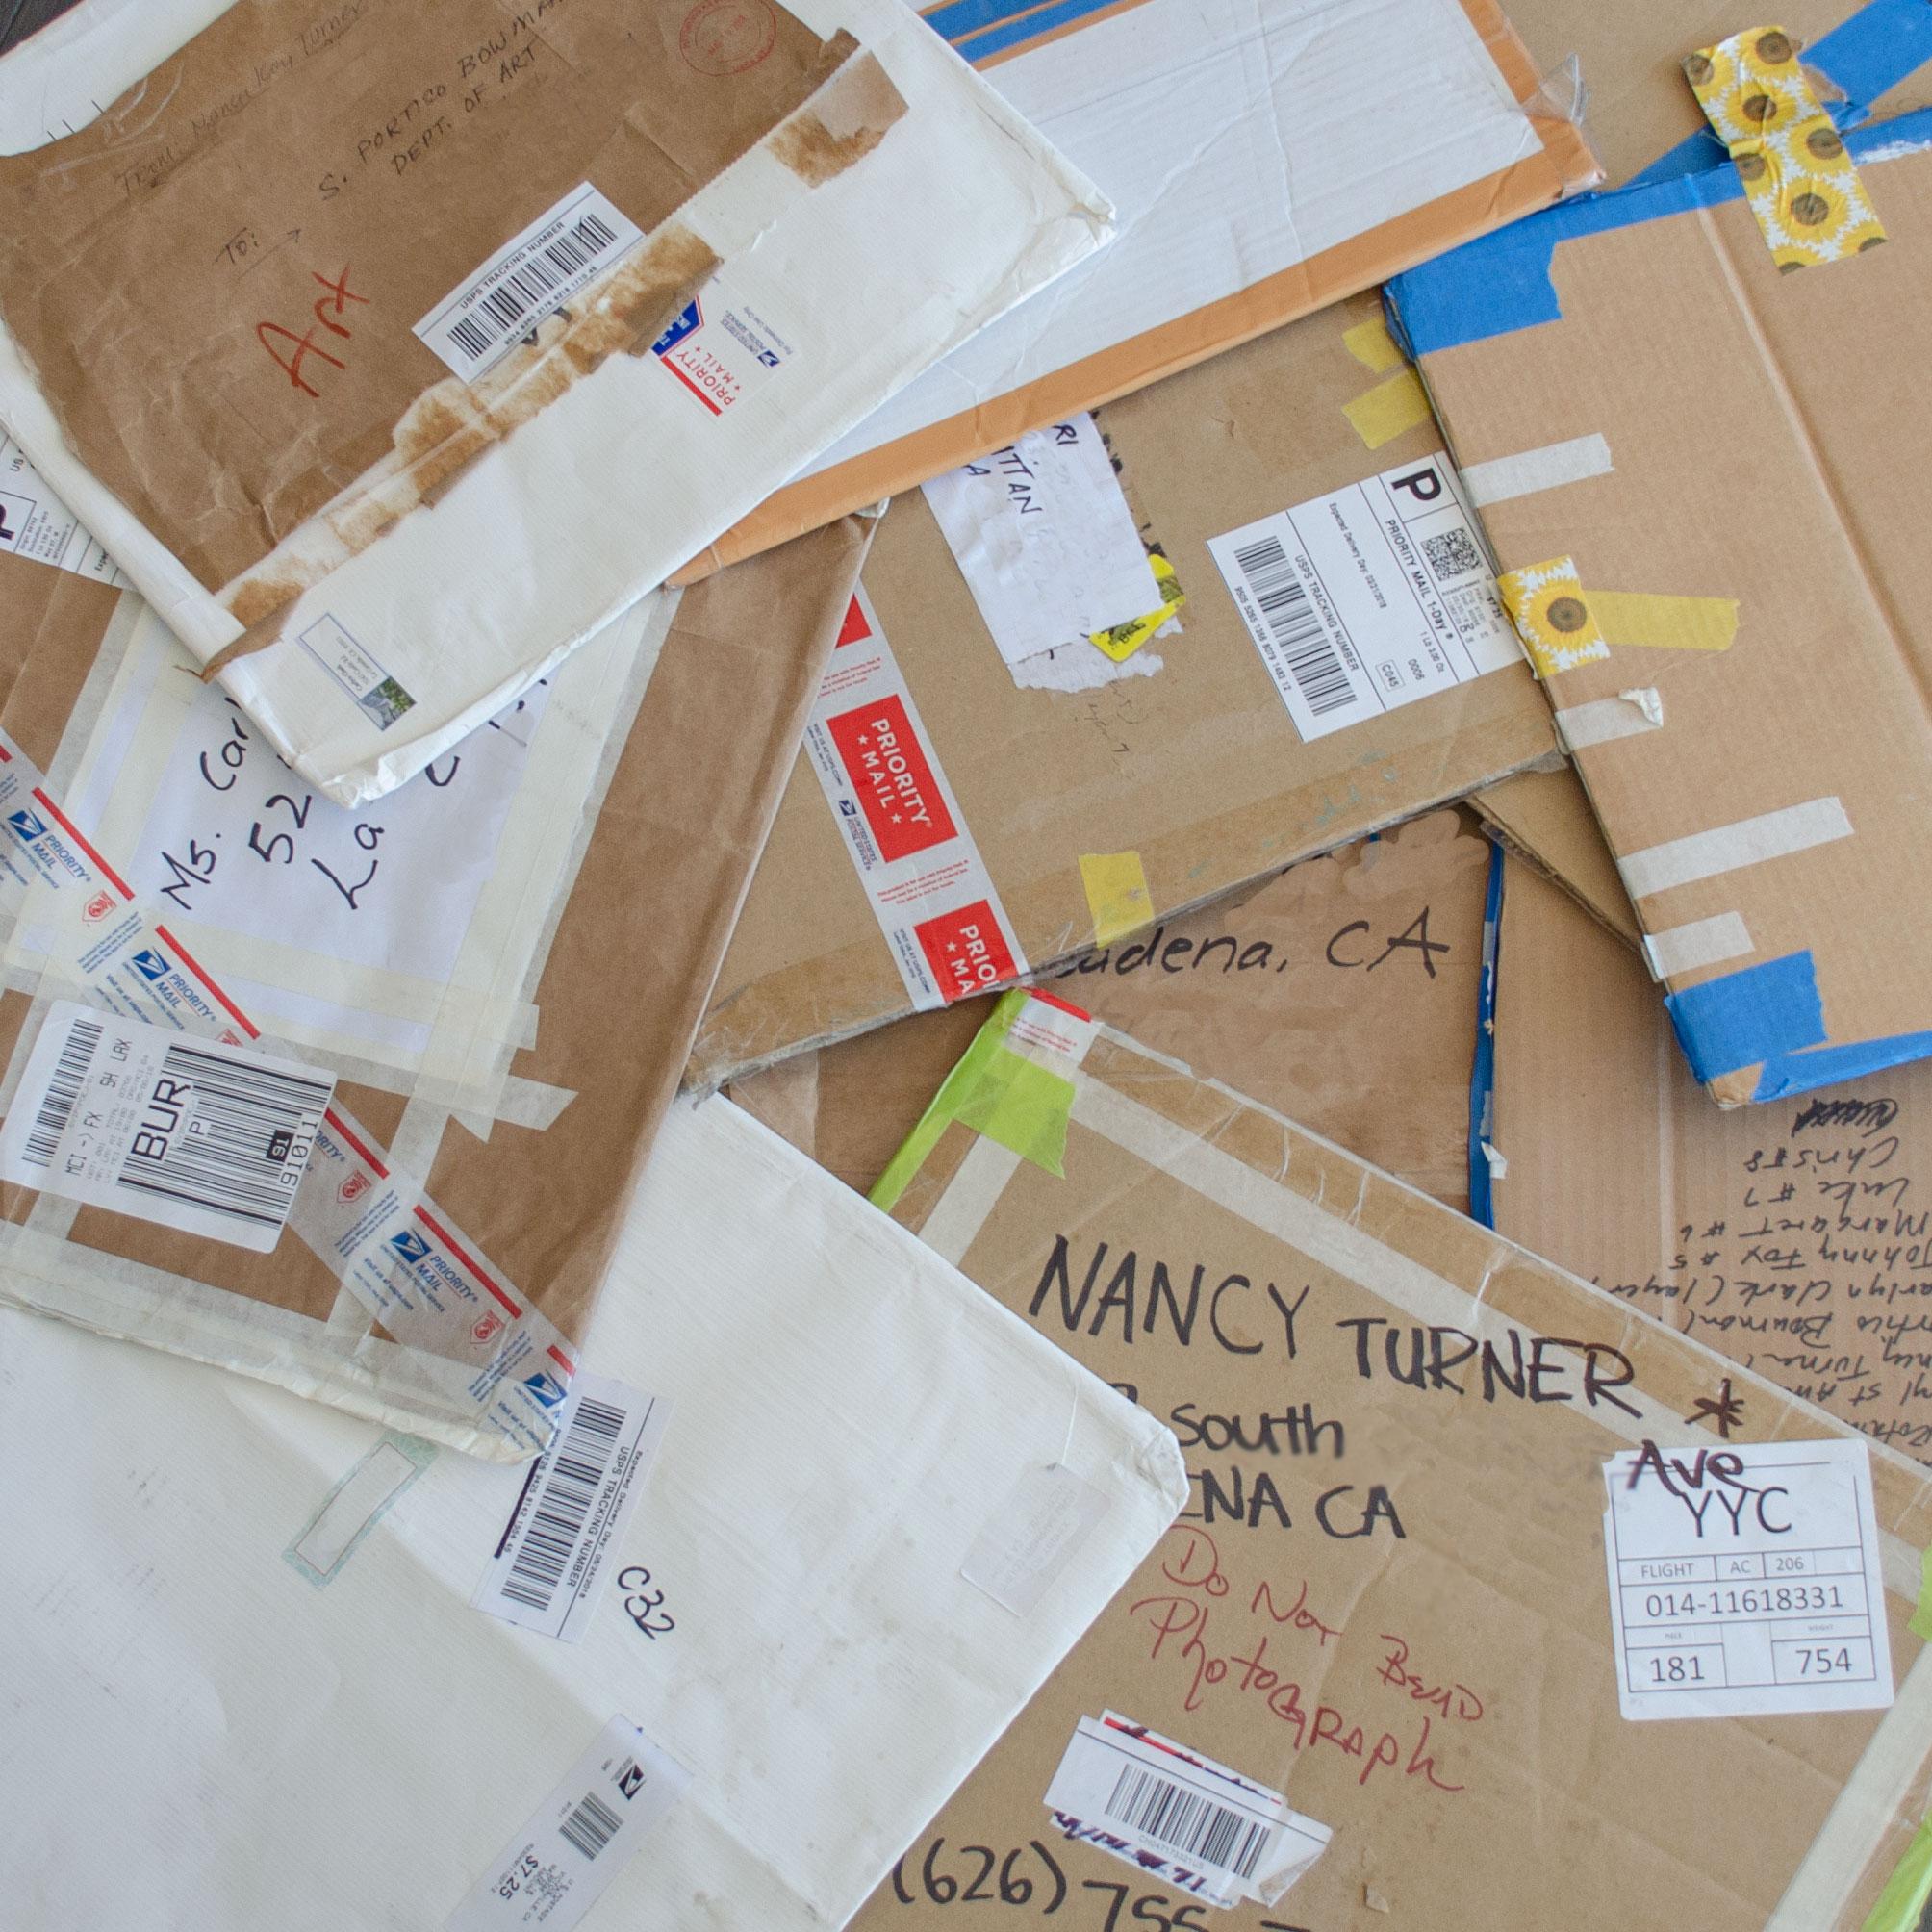 Sometimes the packaging of the artwork itself as it sped or, slogged, through the postal system became archeological as the artists layered paper and text over earlier packages.